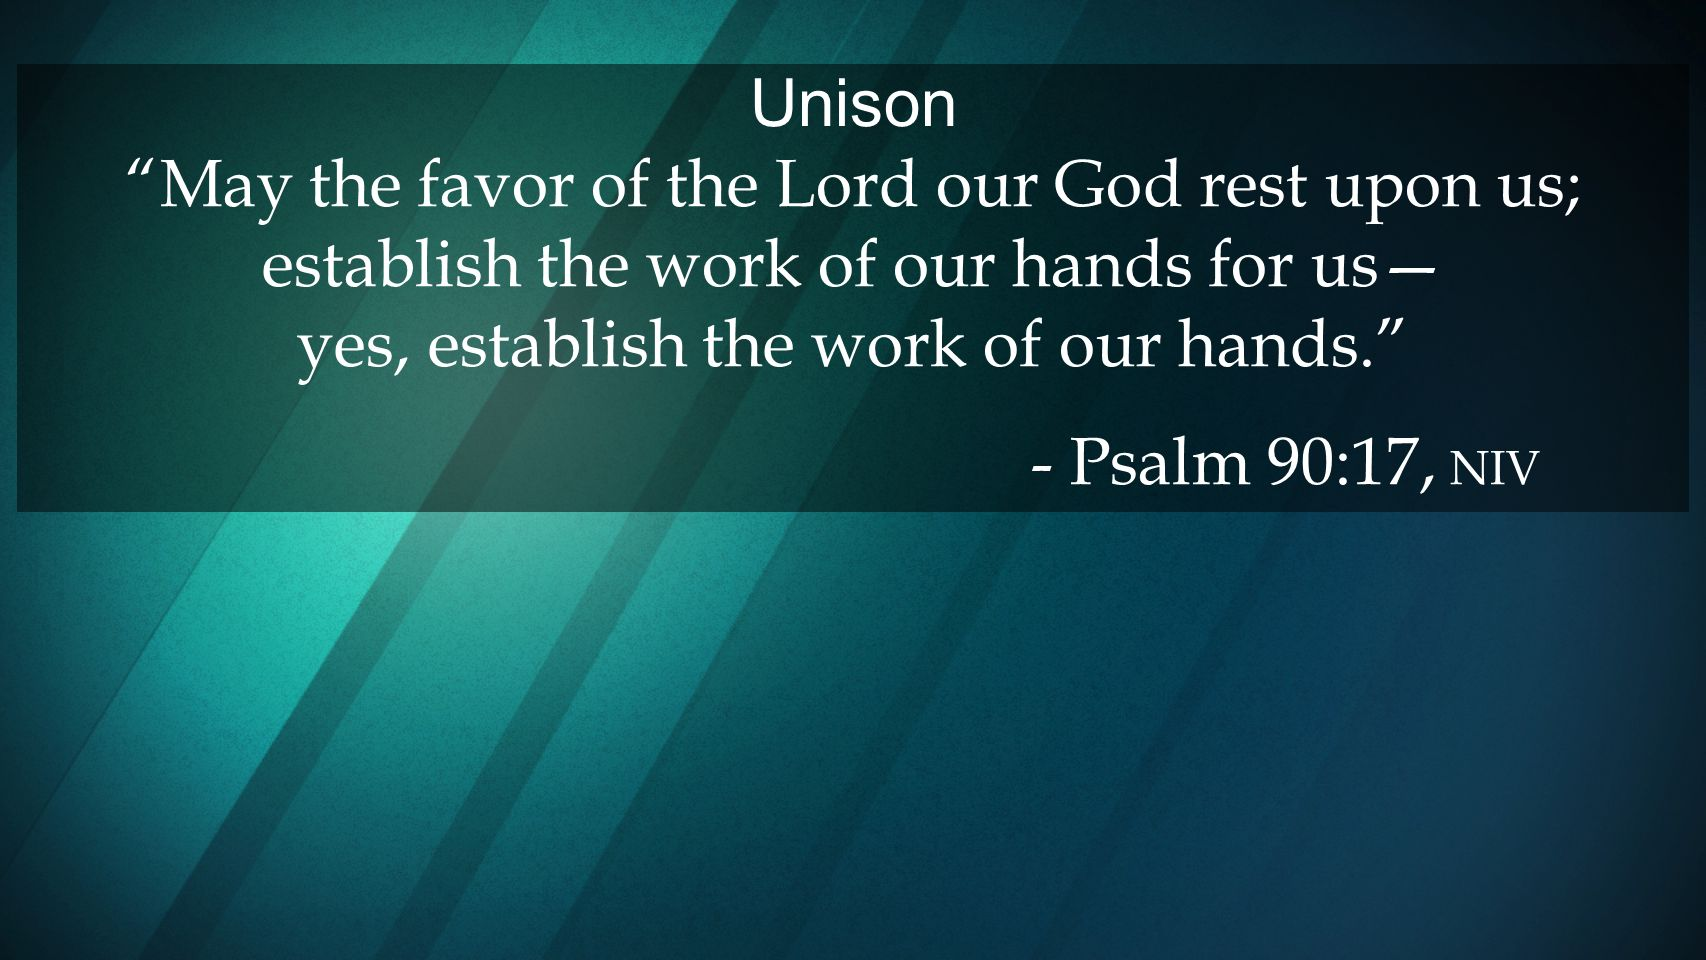 Unison May the favor of the Lord our God rest upon us; establish the work of our hands for us— yes, establish the work of our hands.